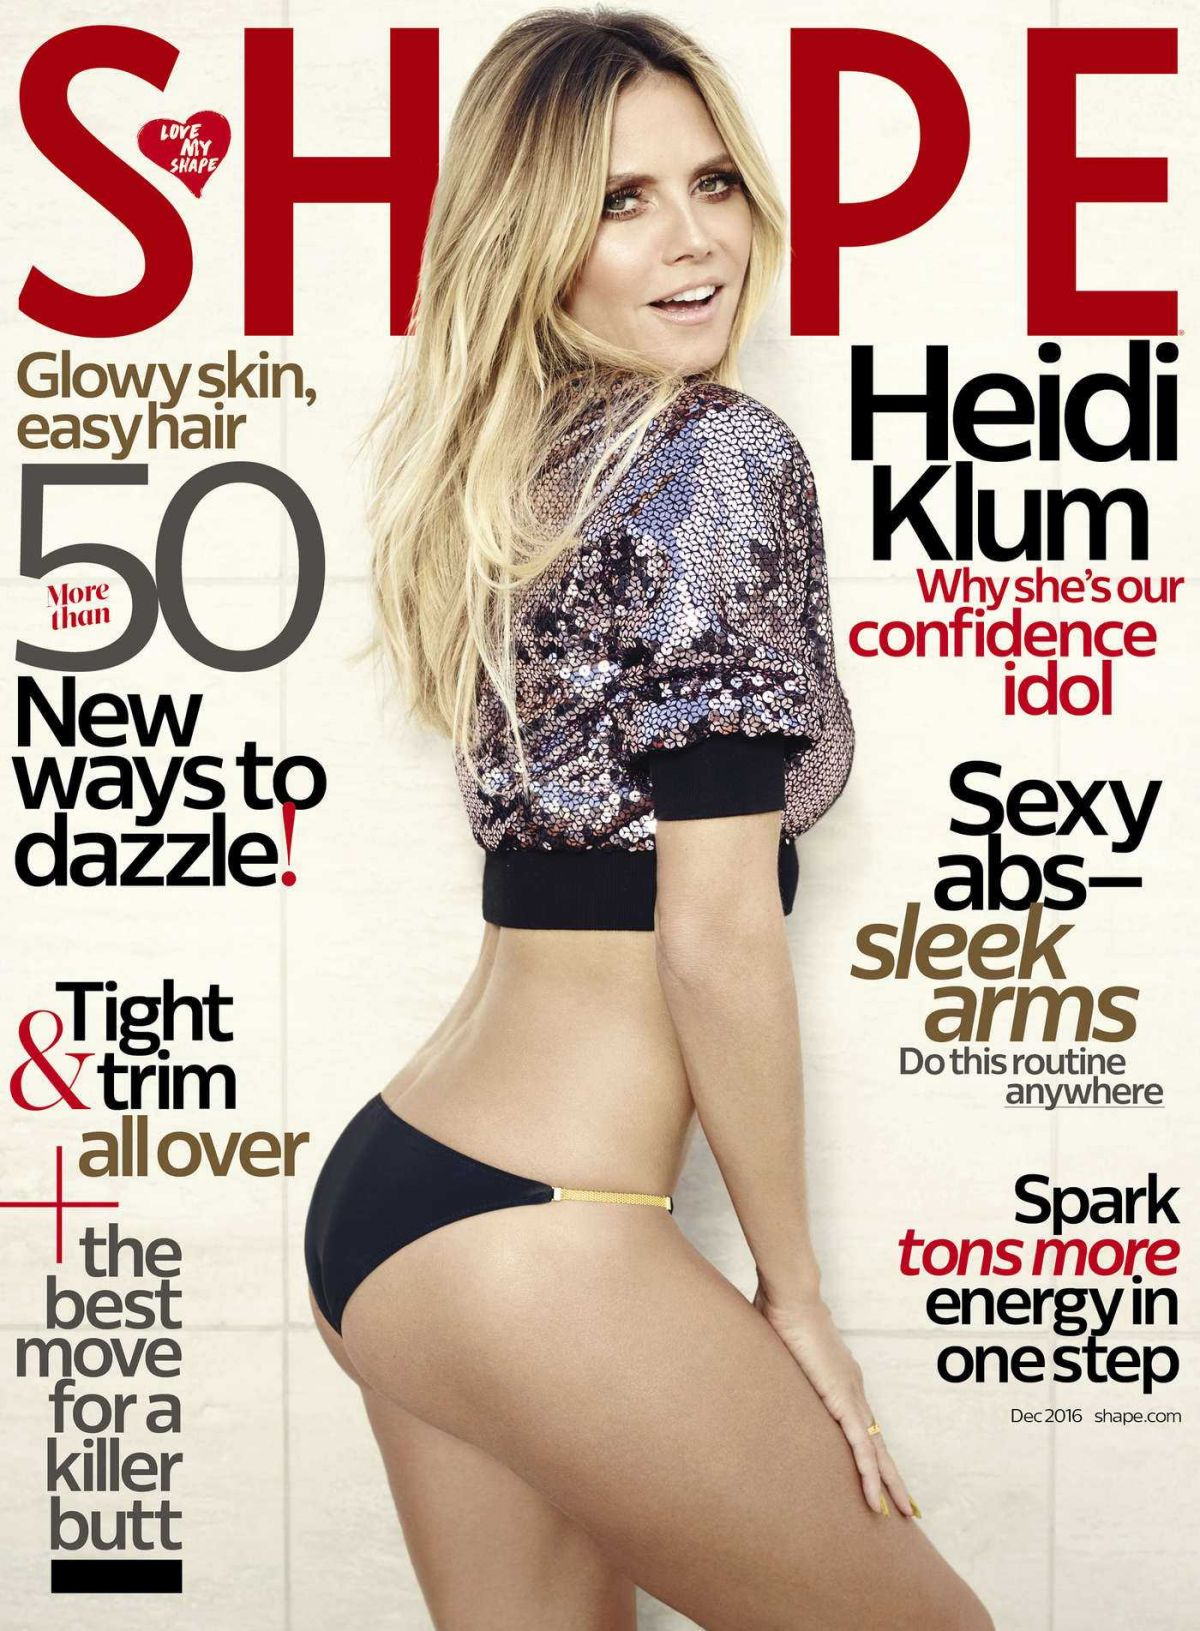 HEIDI KLUM in Shape Magazine, December 2016